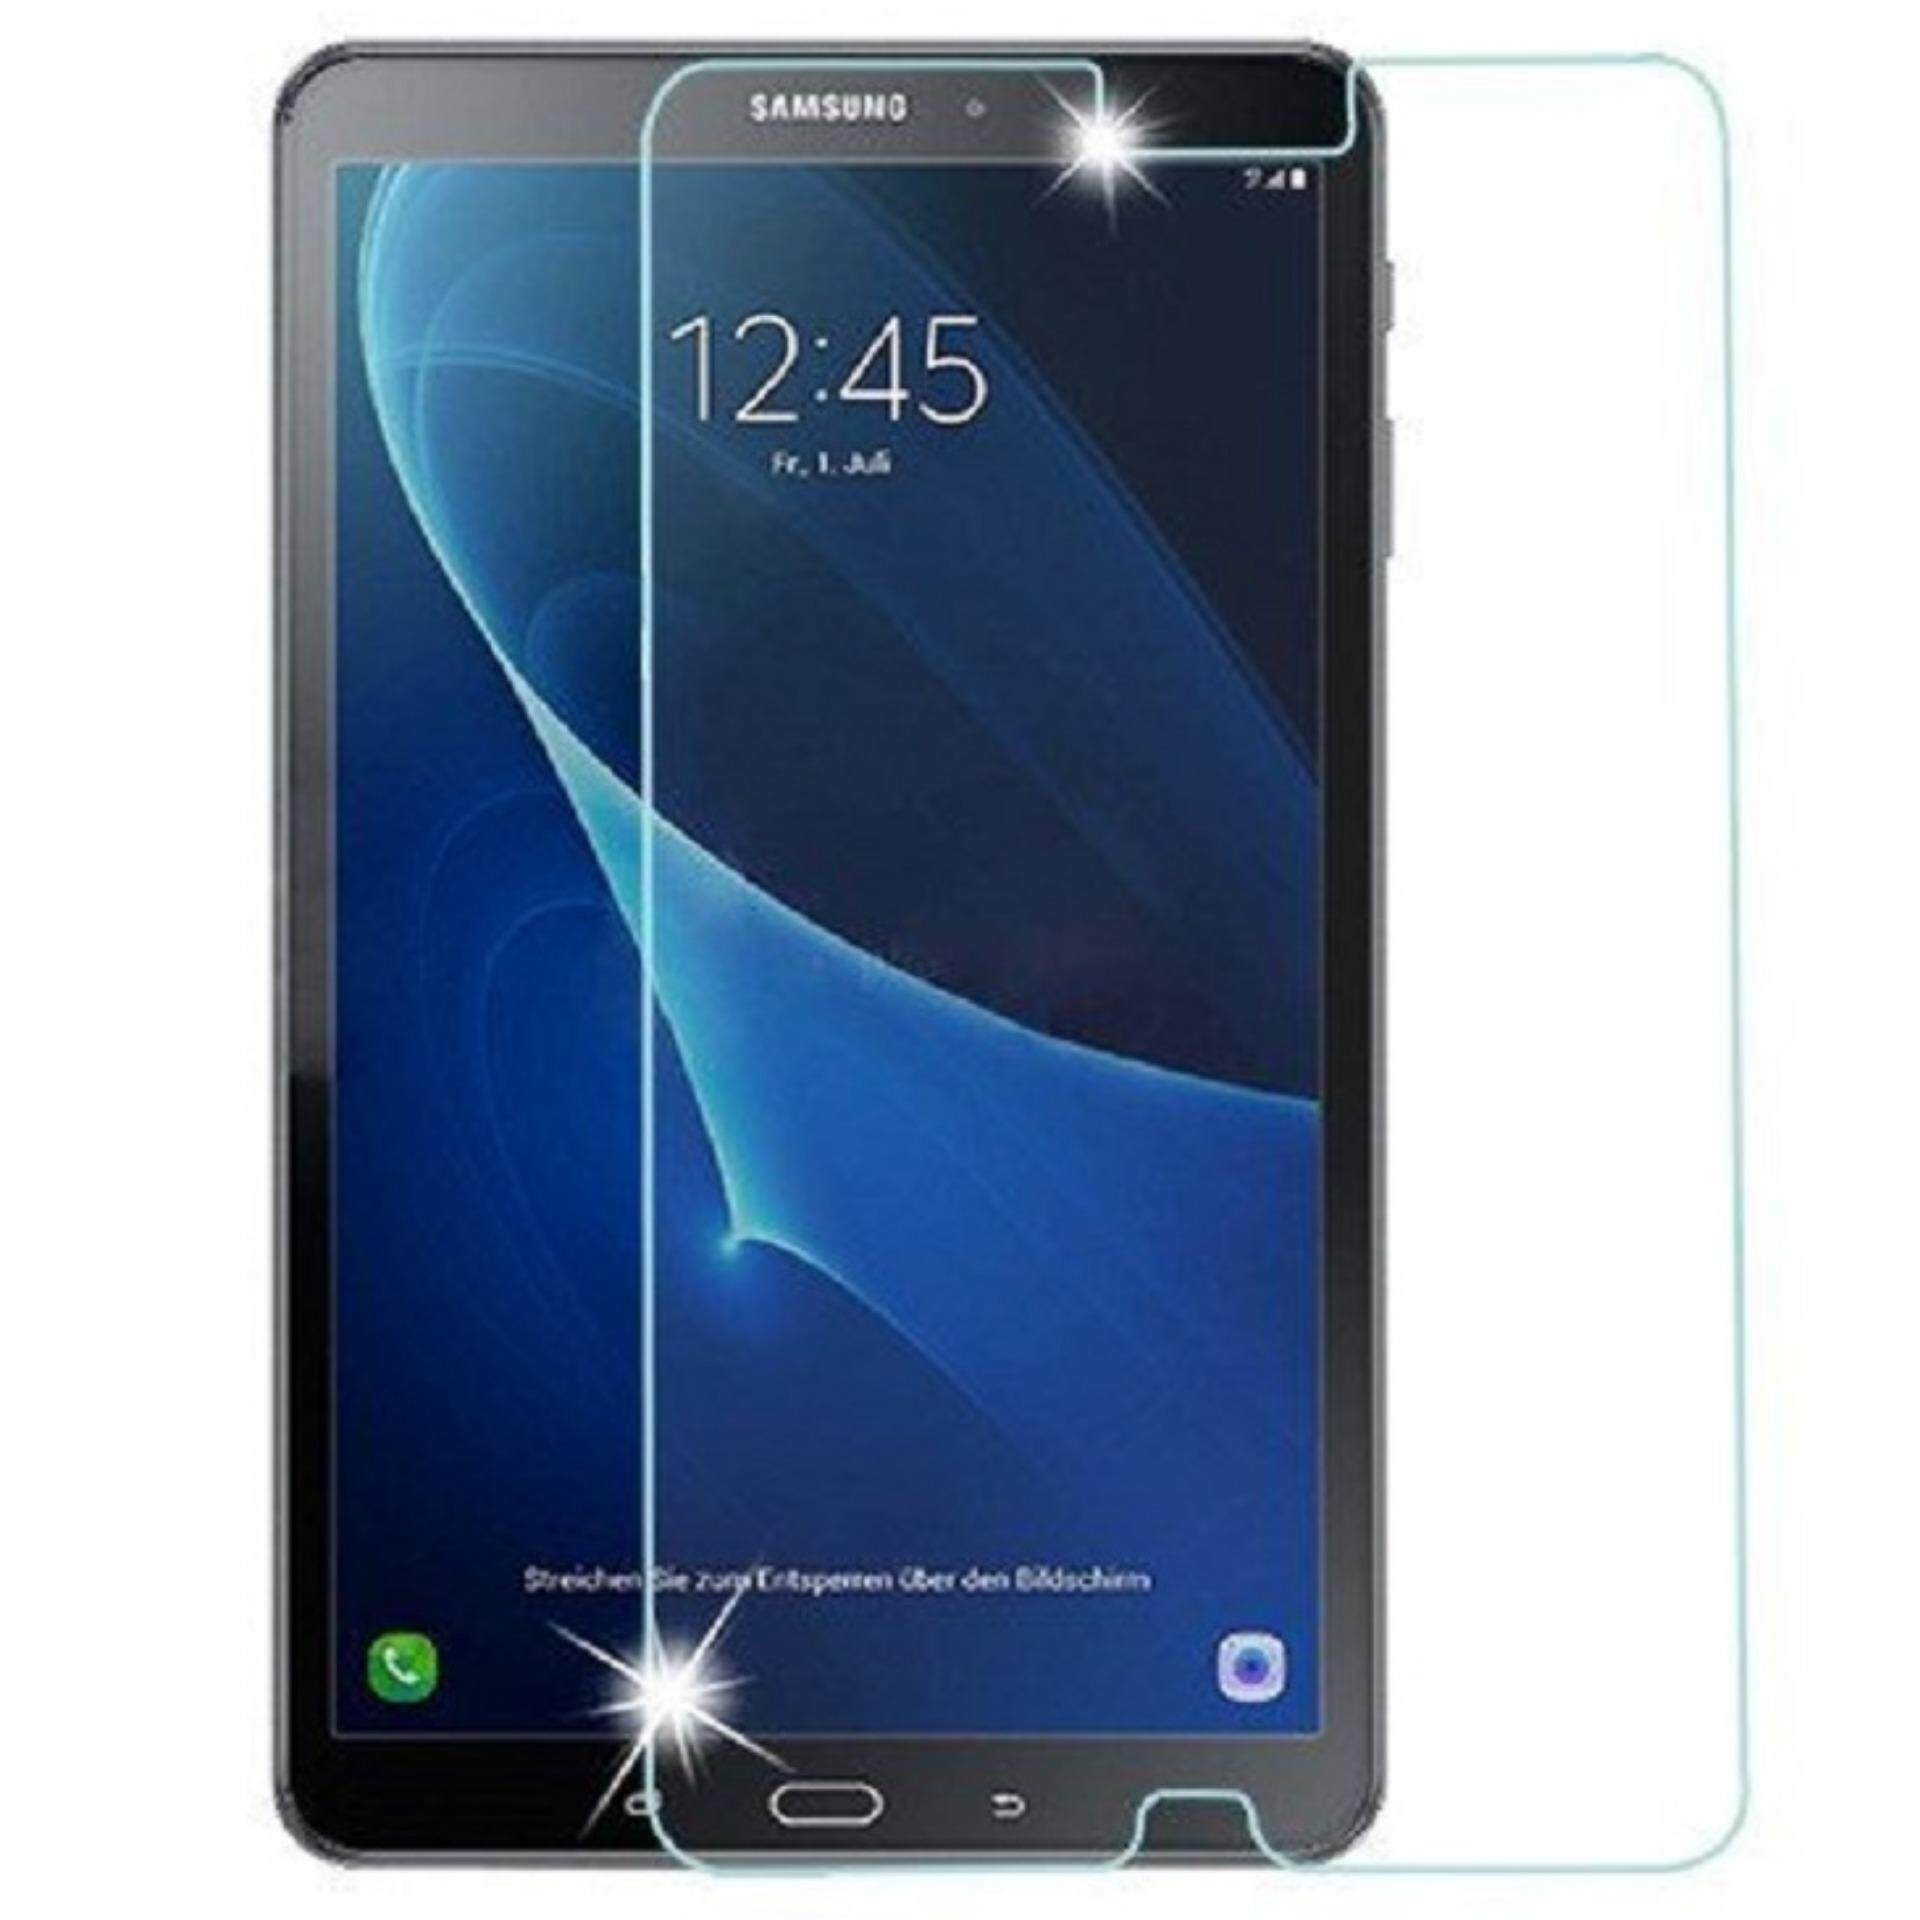 For Samsung Galaxy Tab A 10.1 T580 Tempered Glass Screen Protector 9H Glass